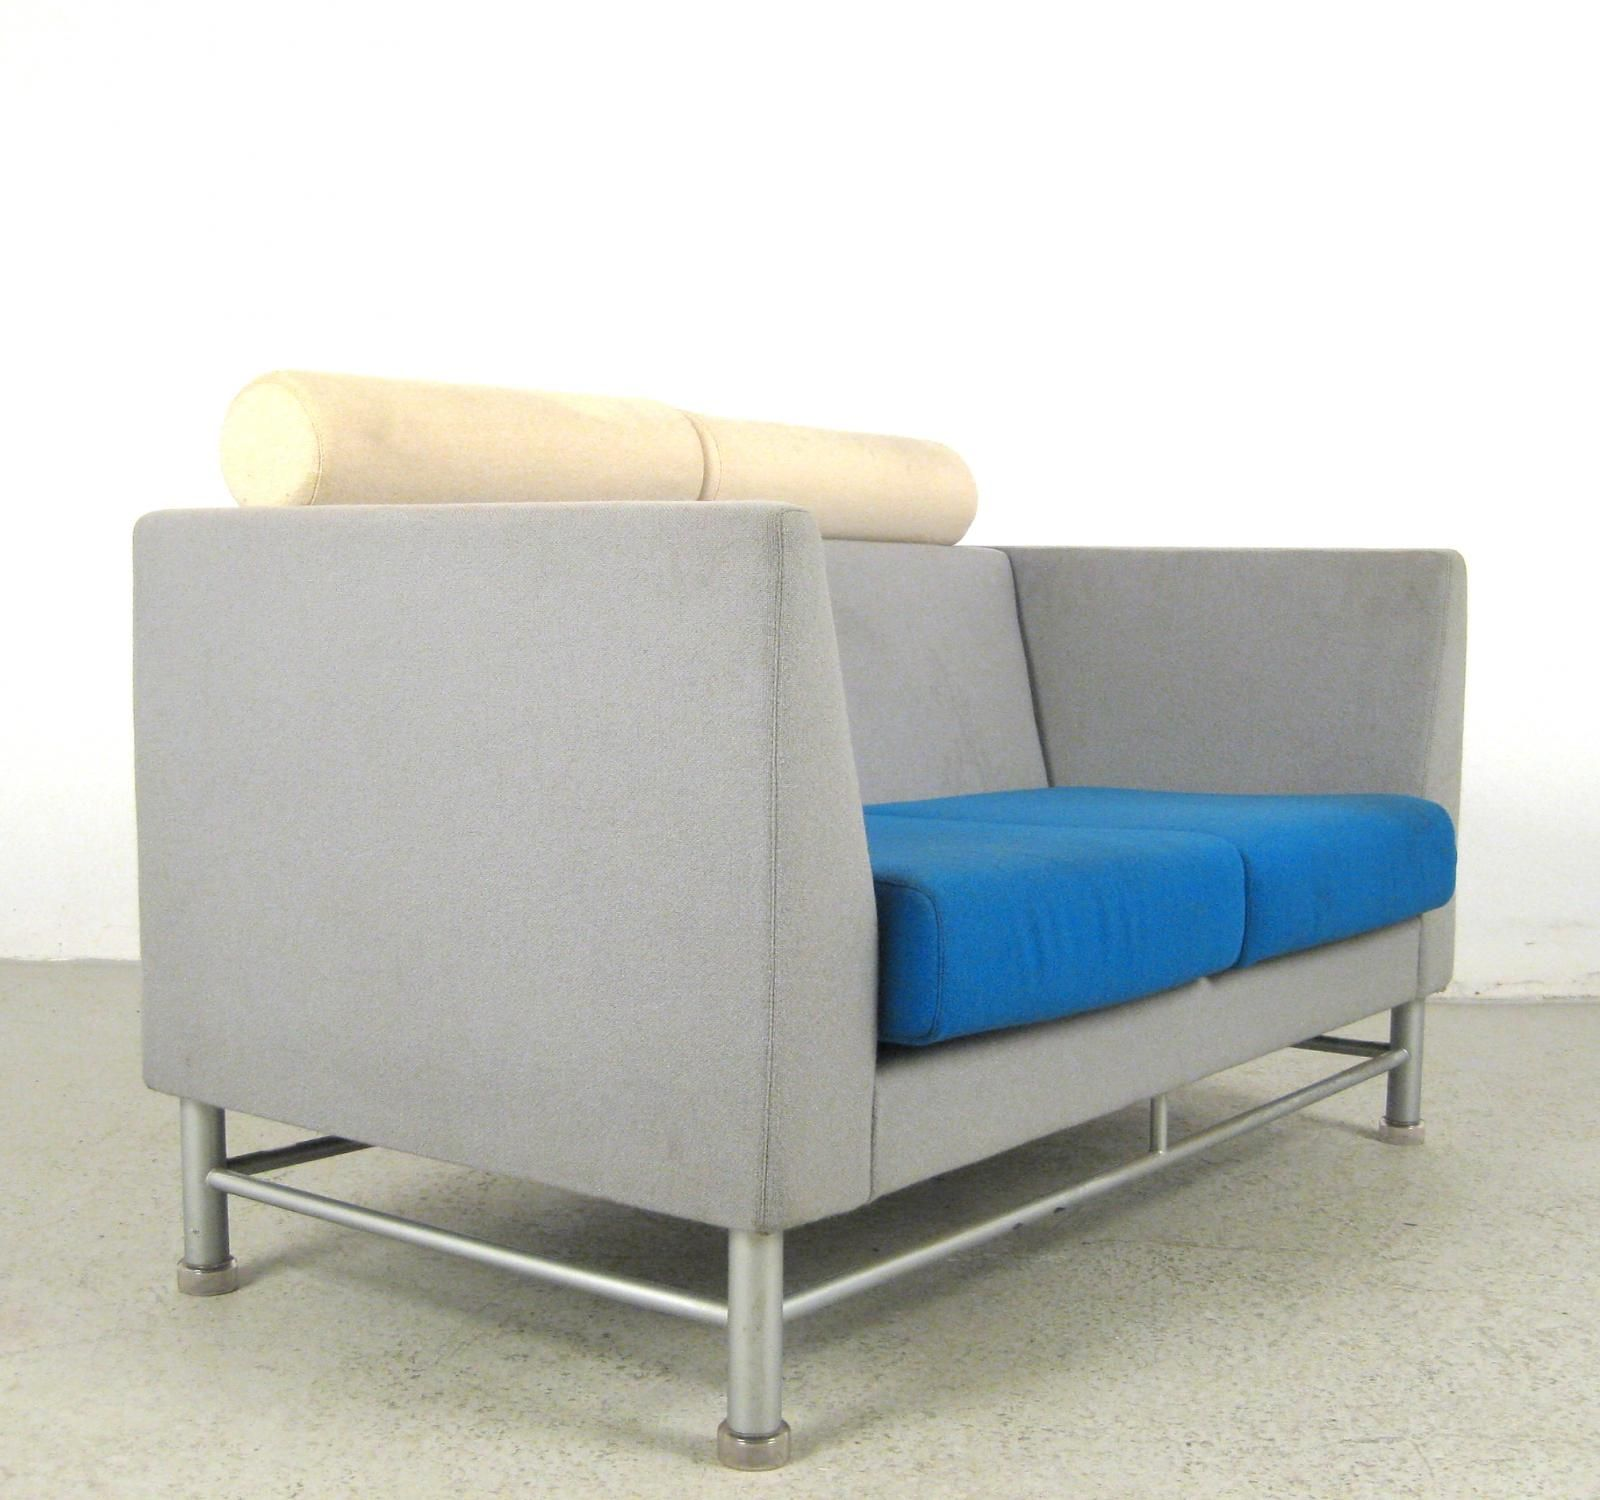 ON STAGE: Ettore Sottsass Eastside sofa  for Ettore Sottsass Sofa  177nar